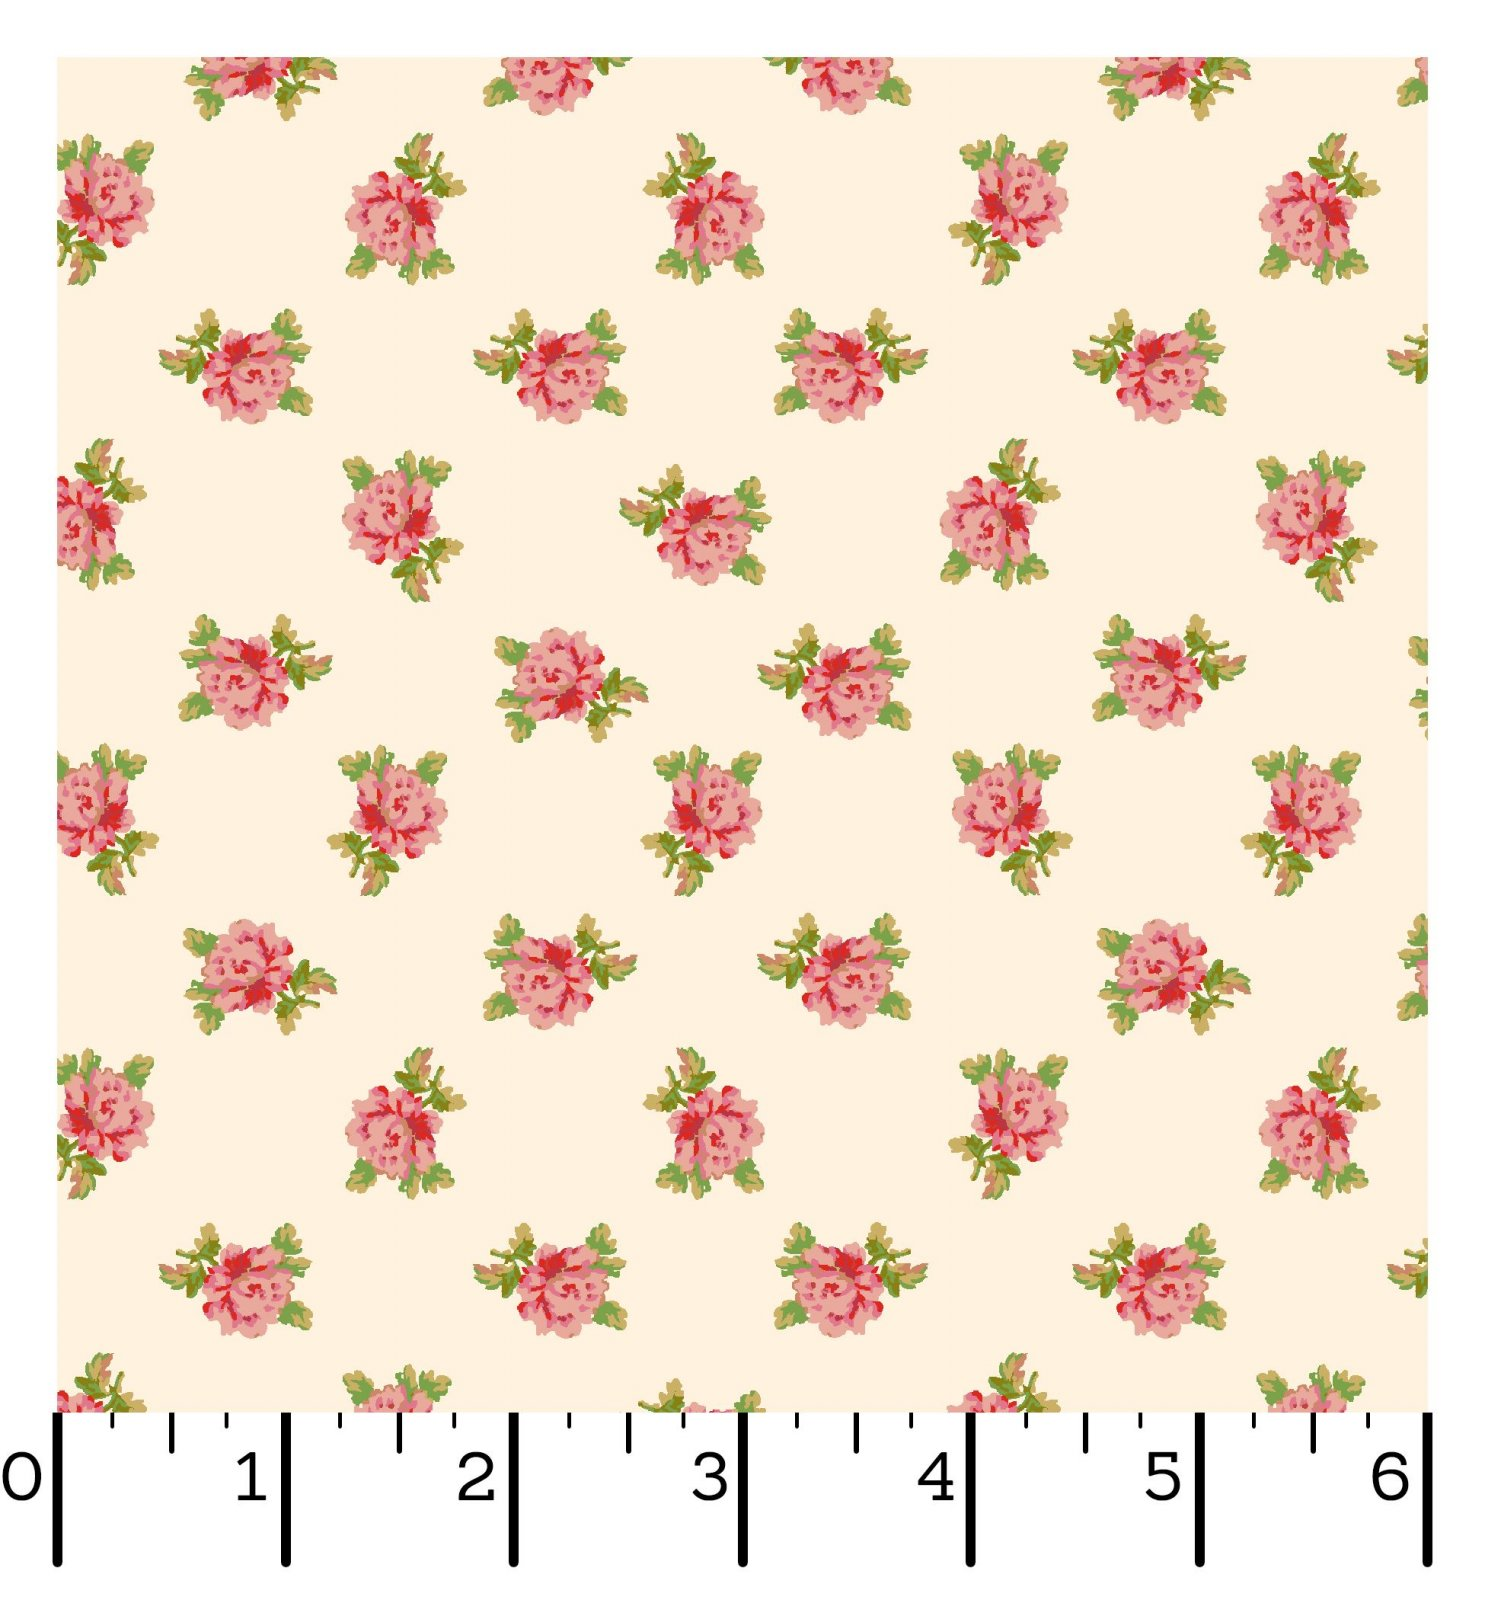 EESC-10013 E - SWEET BEGINNINGS BY JERA BRANDVIG SPACED FLORAL CREAM - ARRIVING IN JUNE 2021